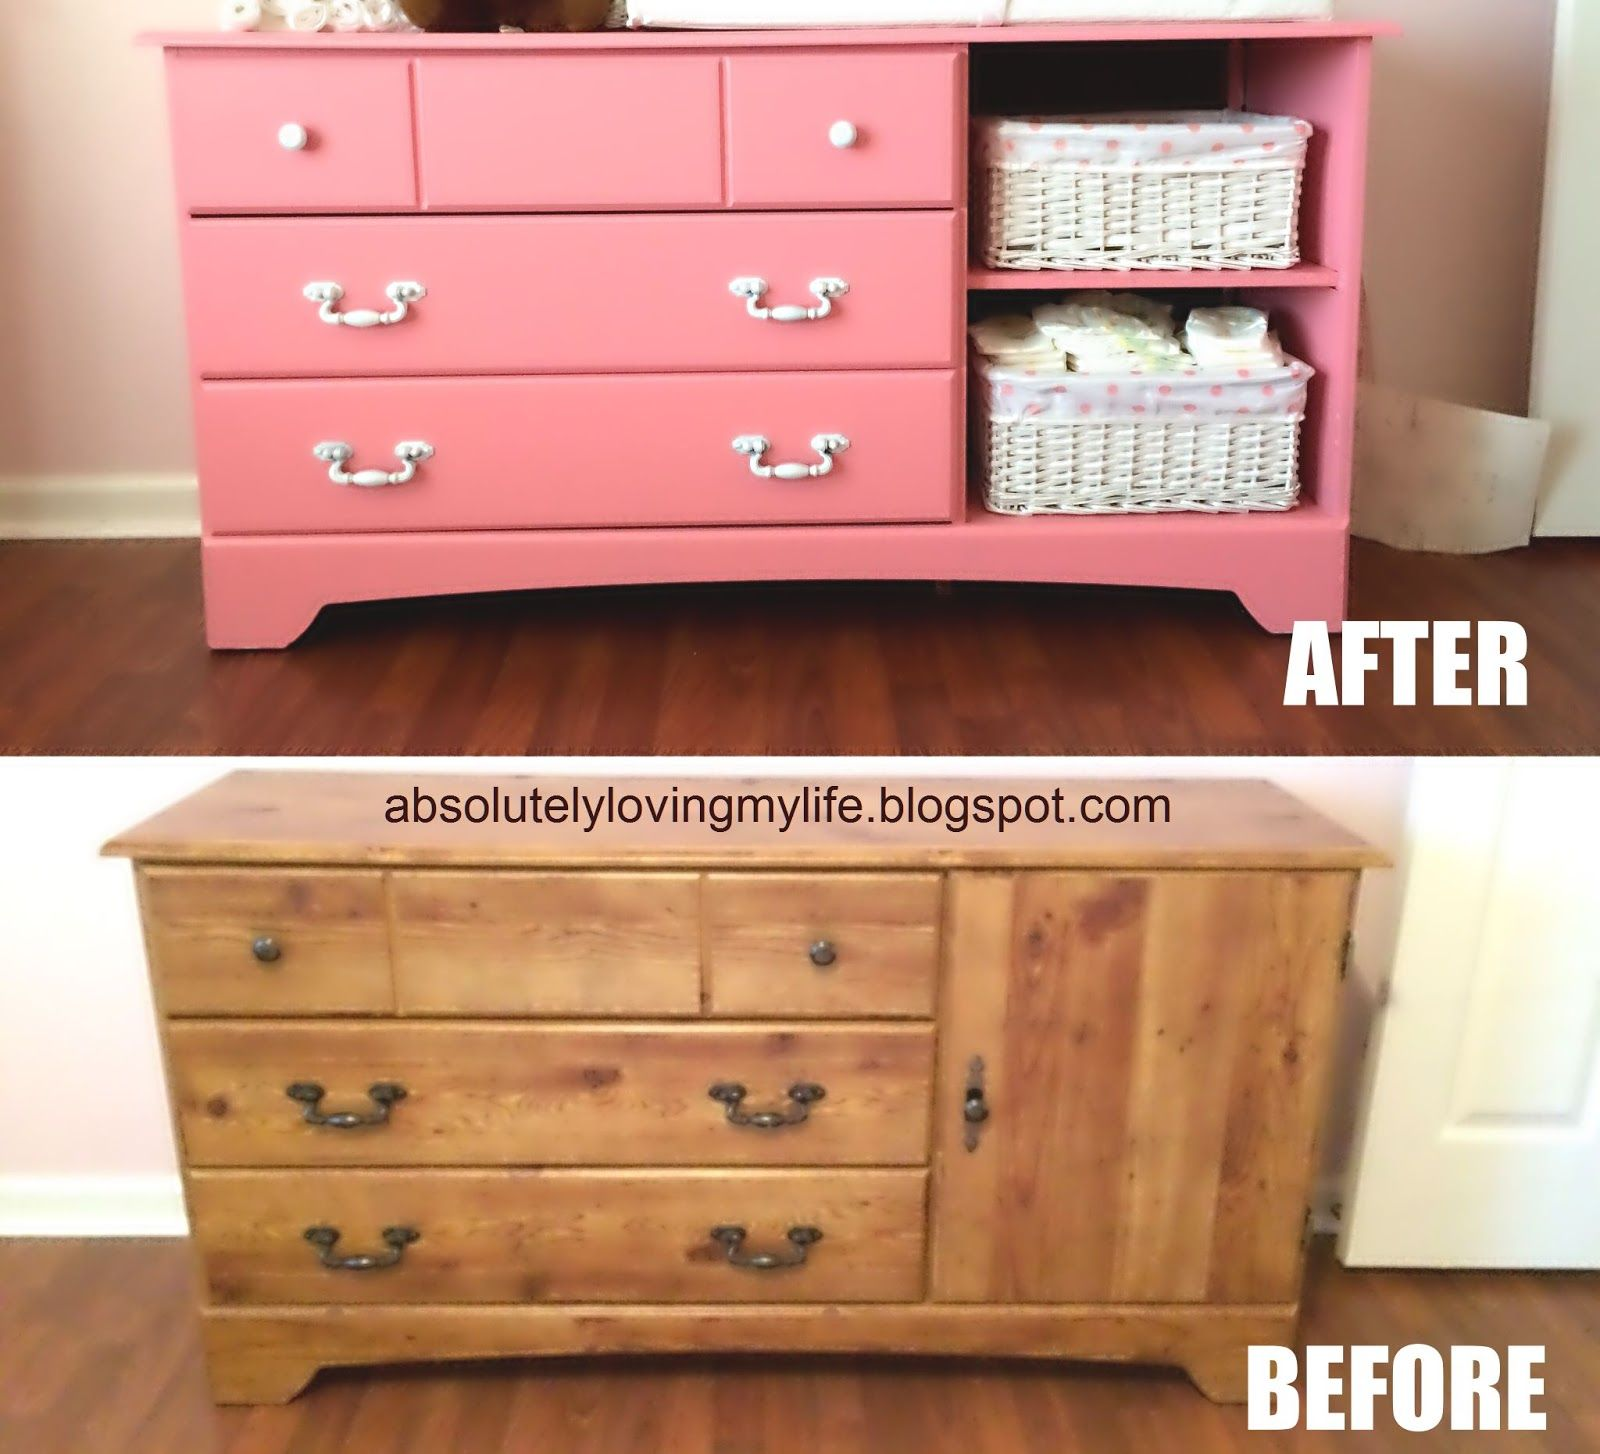 Upcycled Goodwill Dresser Repurposed Into Nursery Changing Table